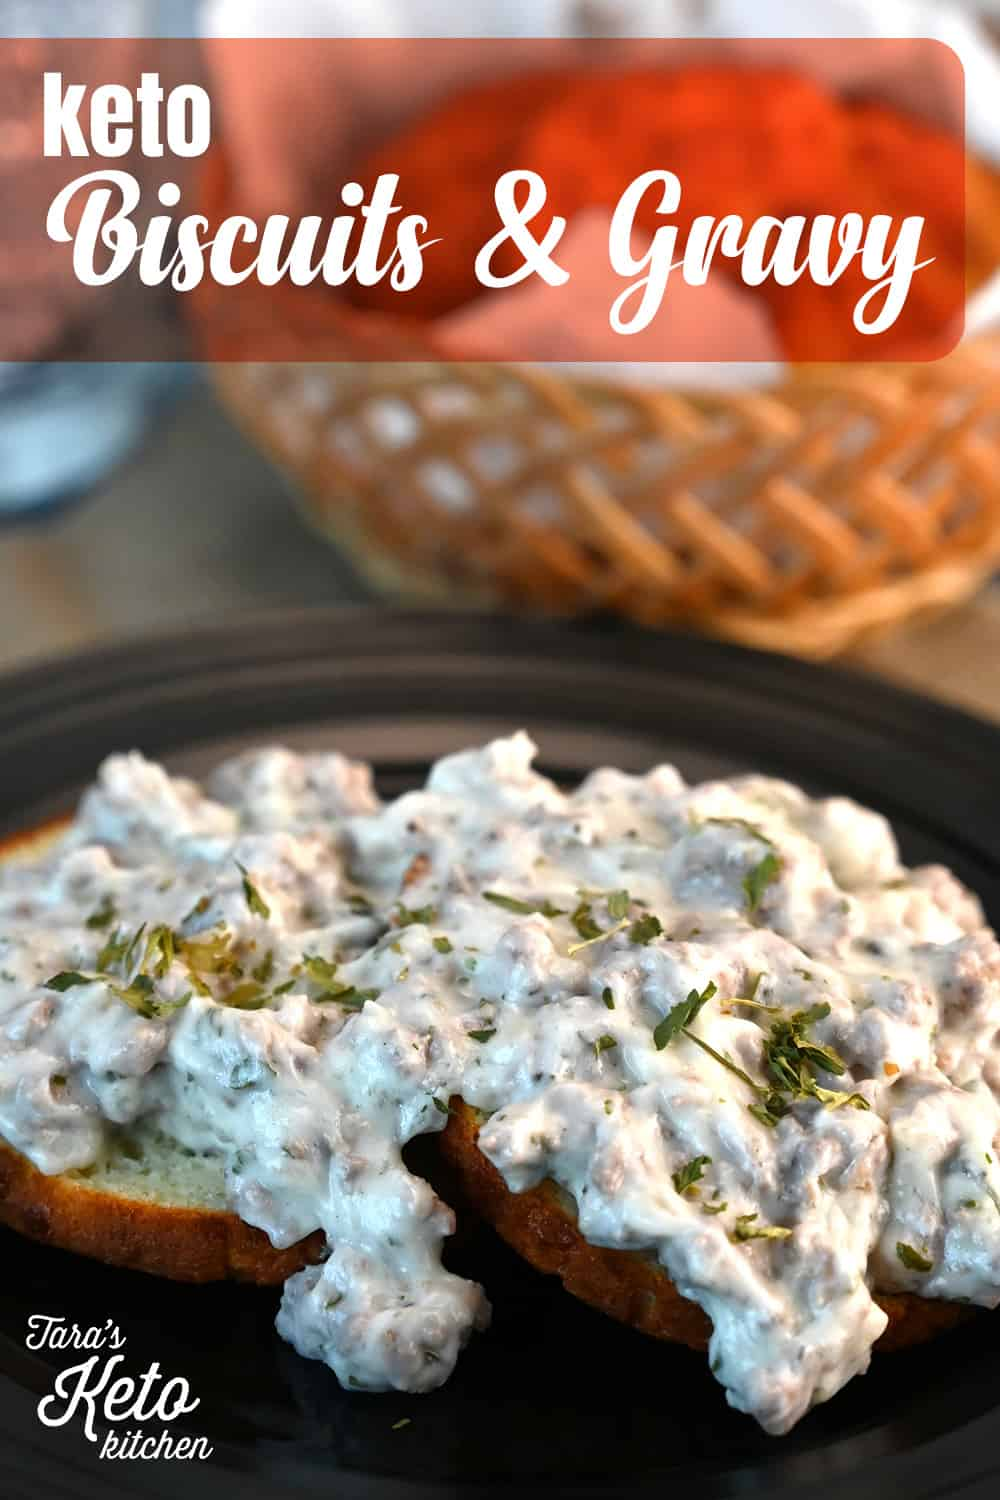 Keto Biscuits & Gravy on a plate with title